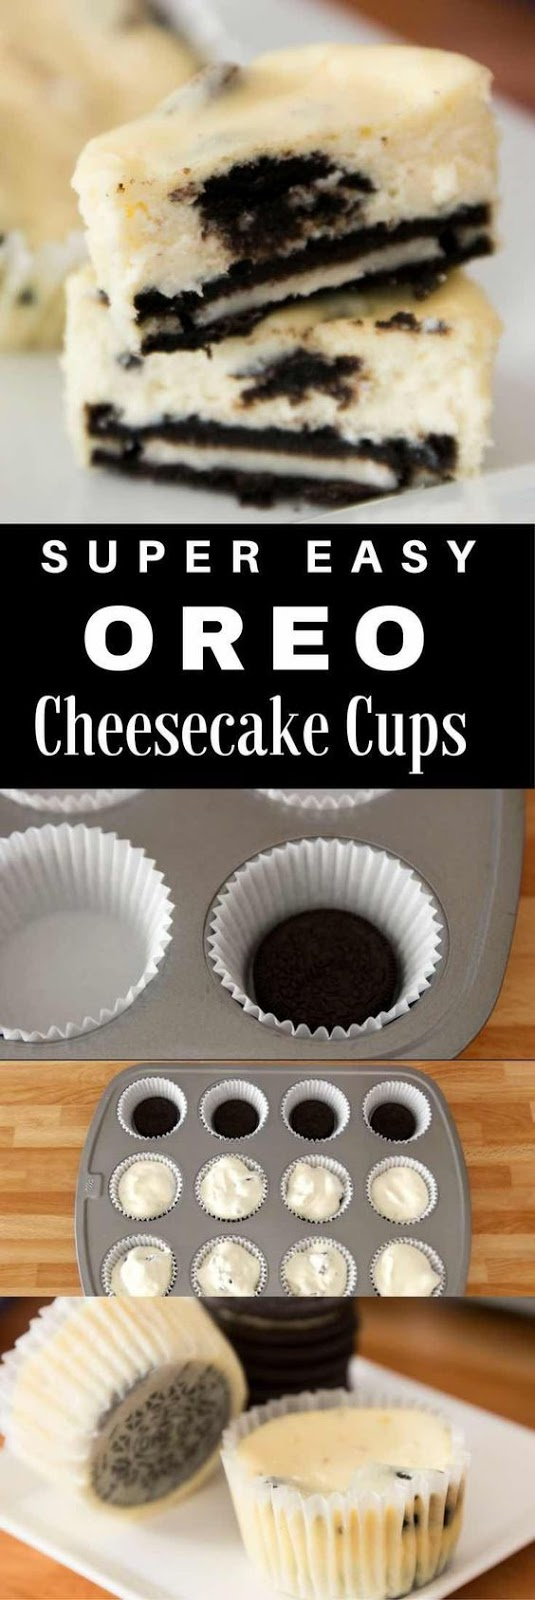 MINI OREO CHEESECAKE CUPCAKES #minioreo #oreo #cheesecake #cakerecipes #cake #cupcakes #dessert #dessertrecipes #easydessertrecipes Desserts, Healthy Food, Easy Recipes, Dinner, Lauch, Delicious, Easy, Holidays Recipe, Special Diet, World Cuisine, Cake, Grill, Appetizers, Healthy Recipes, Drinks, Cooking Method, Italian Recipes, Meat, Vegan Recipes, Cookies, Pasta Recipes, Fruit, Salad, Soup Appetizers, Non Alcoholic Drinks, Meal Planning, Vegetables, Soup, Pastry, Chocolate, Dairy, Alcoholic Drinks, Bulgur Salad, Baking, Snacks, Beef Recipes, Meat Appetizers, Mexican Recipes, Bread, Asian Recipes, Seafood Appetizers, Muffins, Breakfast And Brunch, Condiments, Cupcakes, Cheese, Chicken Recipes, Pie, Coffee, No Bake Desserts, Healthy Snacks, Seafood, Grain, Lunches Dinners, Mexican, Quick Bread, Liquor